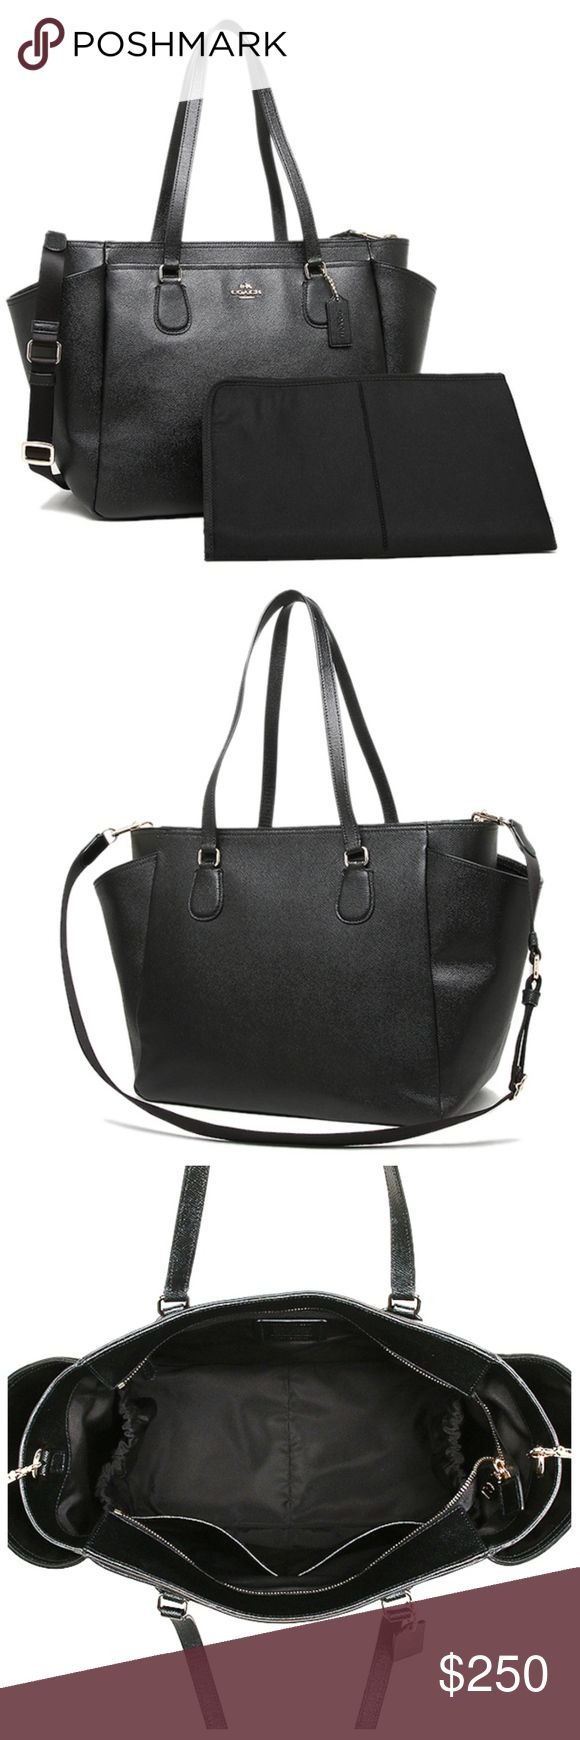 """NEW COACH BLACK CROSSGRAIN LEATHER DIAPER BABY BAG NEW COACH BLACK MULTIFUNCTION CROSSGRAIN LEATHER  DIAPER BABY BAG  F57786 Black Brand New with Tags  100% Authentic - Will ship in gift box with gift receipt   size : 17"""" (L) X 11 """" (H) 7 """" (W) 2 Large Zip Pocket 2 Large Slip Pockets 2 Bottle Holder Pockets CHANGING PAD (25"""" X 17"""") Coach Bags Baby Bags"""